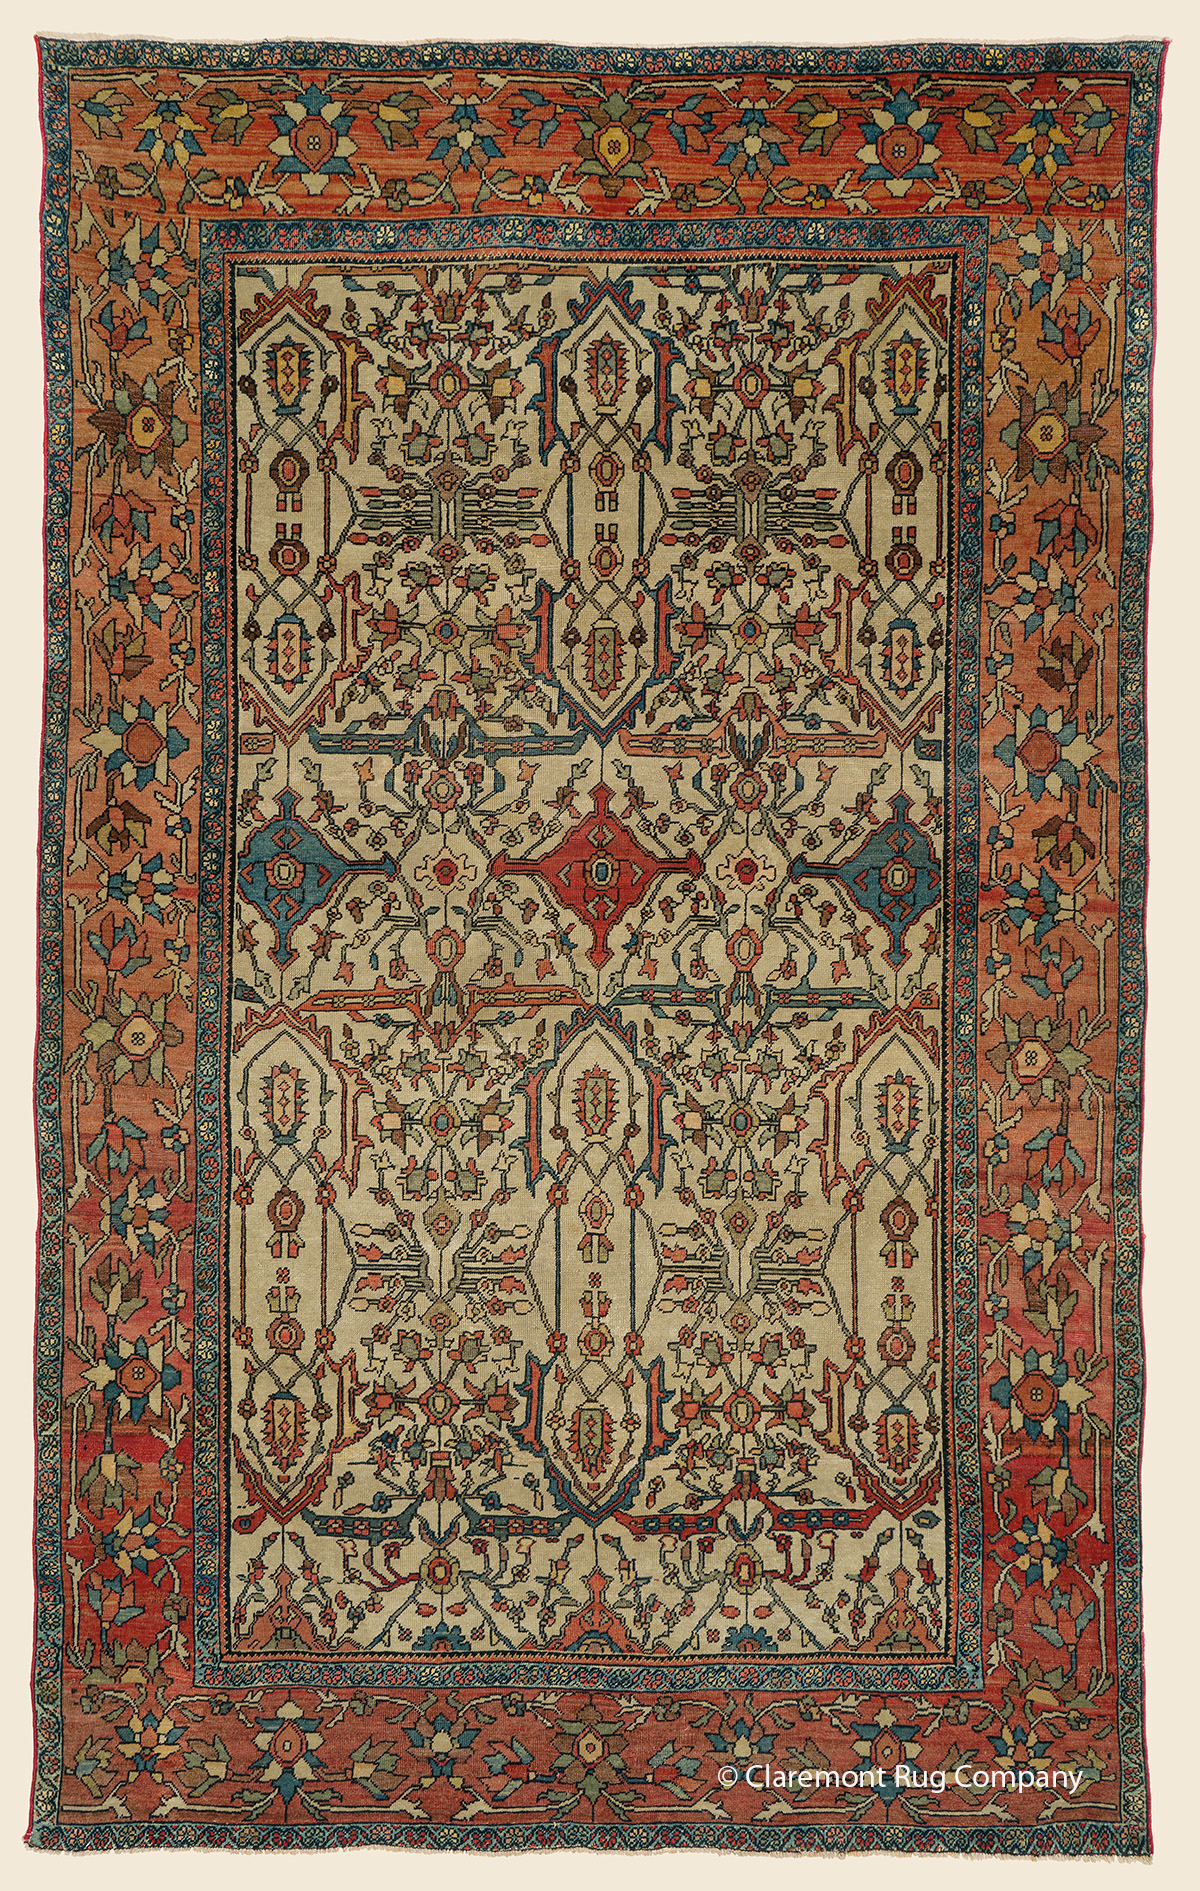 19th Century Ferahan Oriental rug with filigree design of blossoms and vinery on an ivory ground